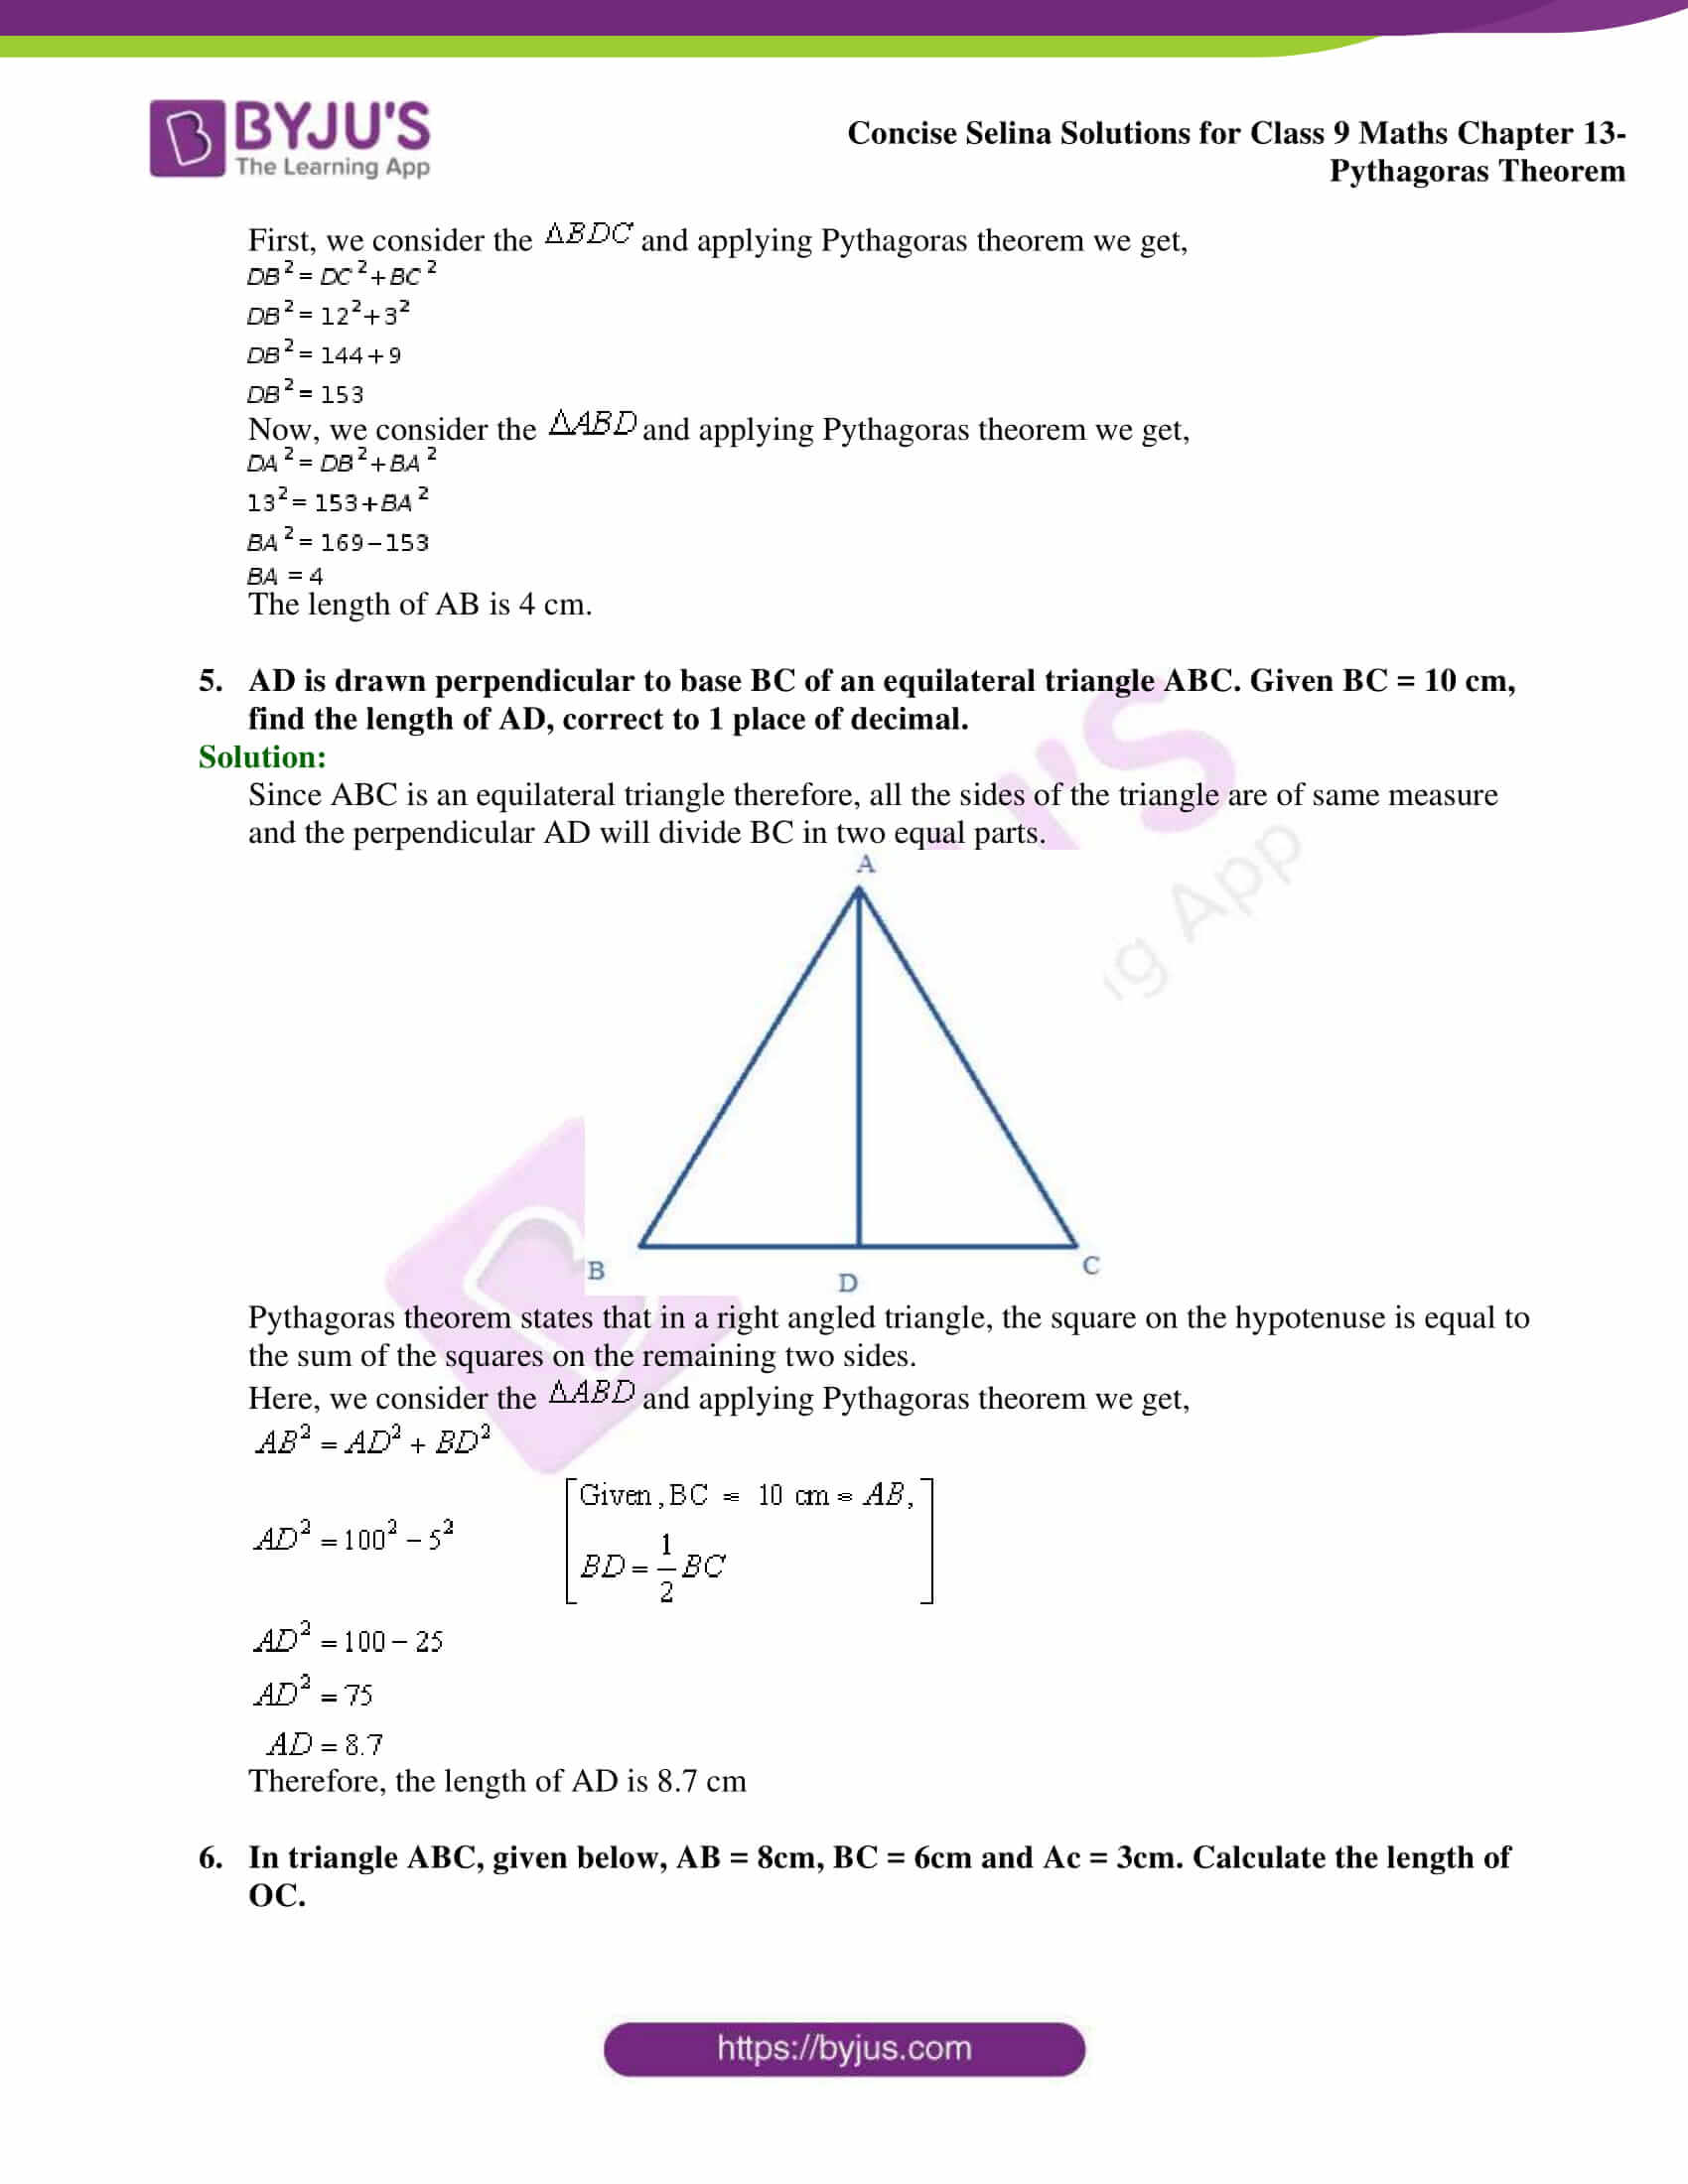 selina Solutions for Class 9 Maths Chapter 13 part 03